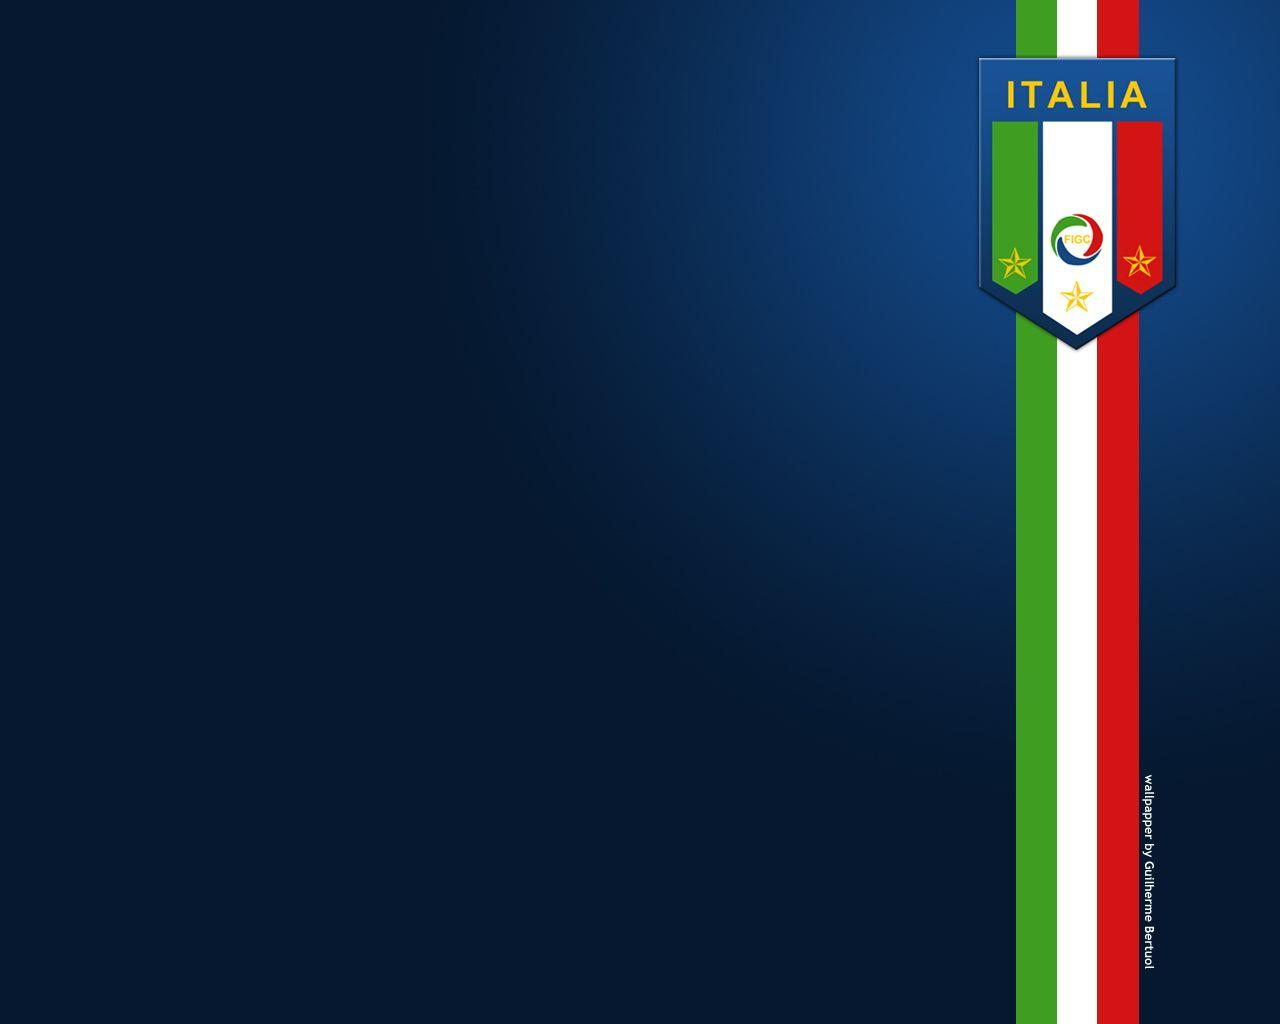 Italia wallpapers wallpaper cave for Italy wallpaper